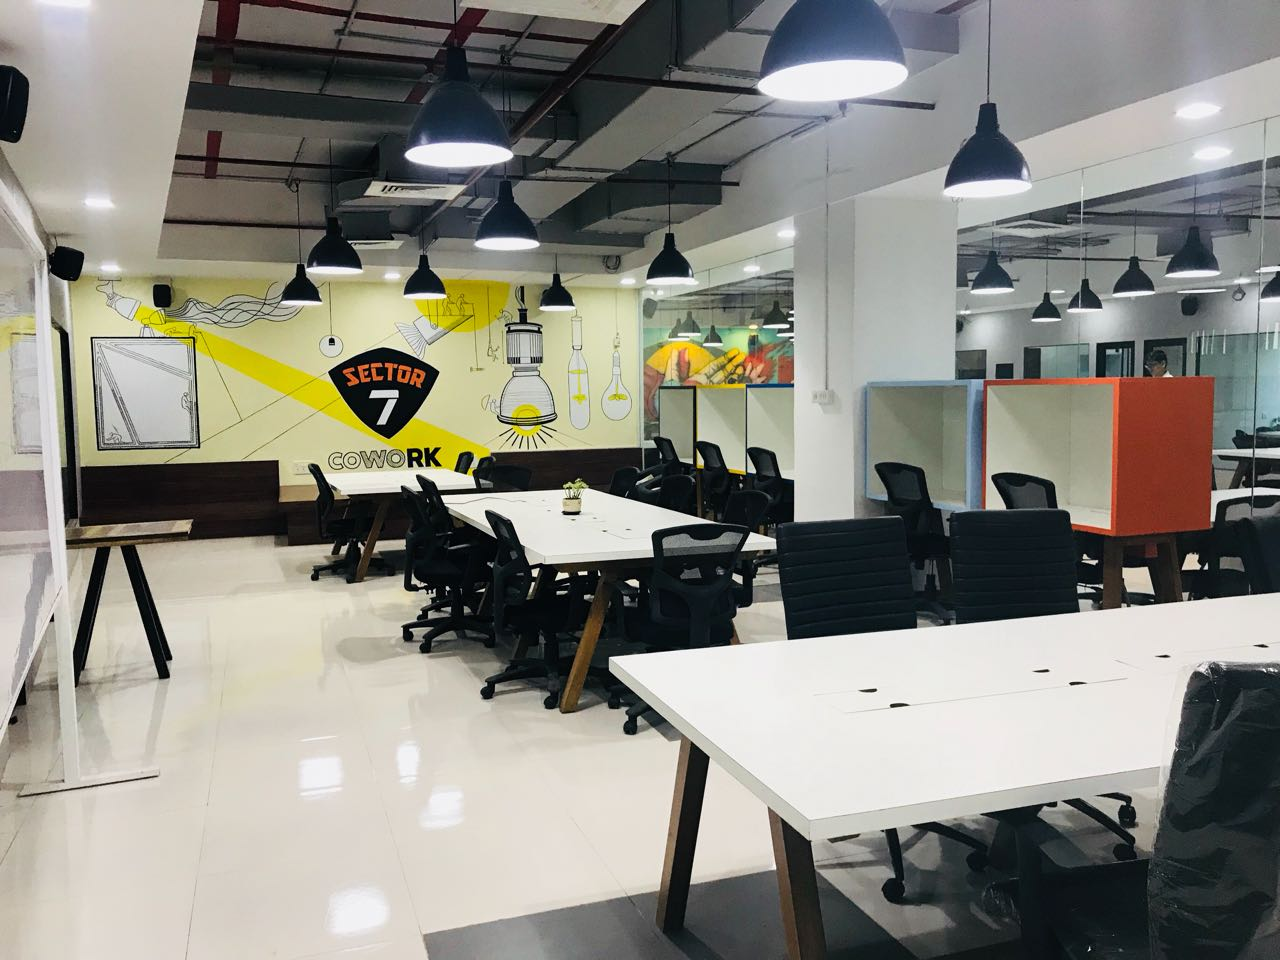 Sector 7 Workspaces, Pune